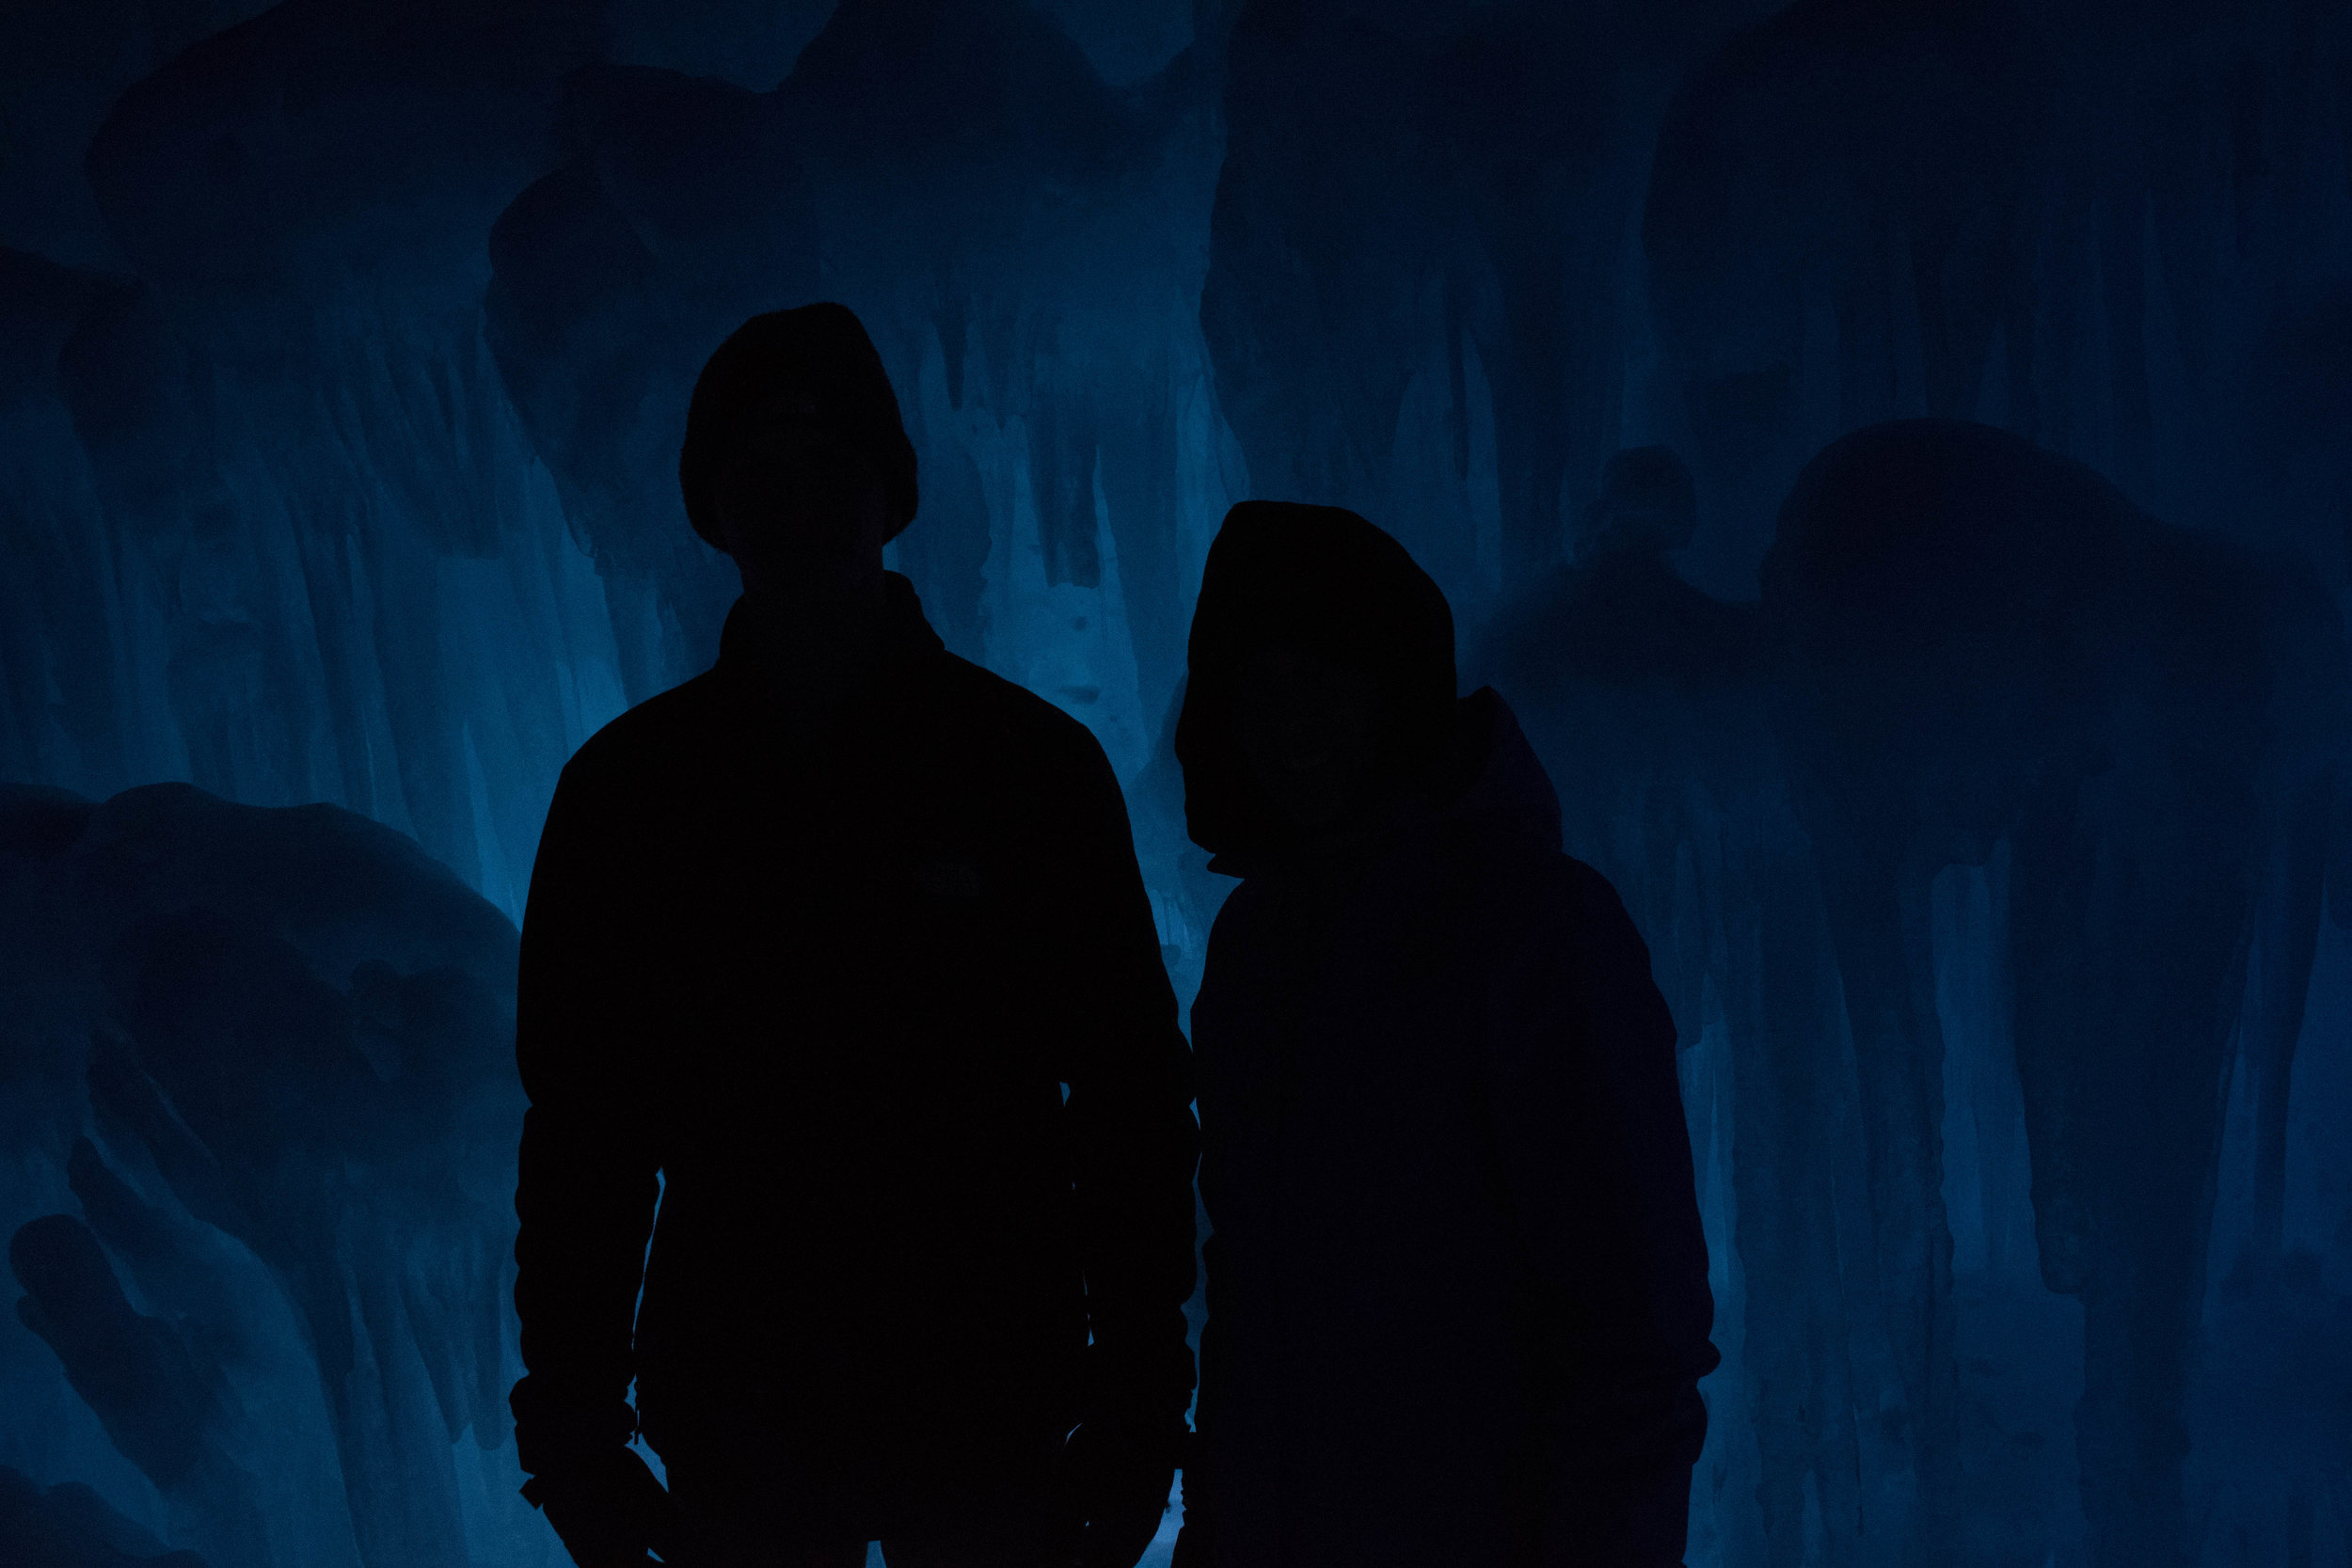 Race - Photo by Jack Michuad on Unsplash. [IMAGE DESCRIPTION: two silhouettes are seen from waist up wearing what appears to be a hoodie and the other wearing a hat on the left. The background is a dark blue cave with ice.]